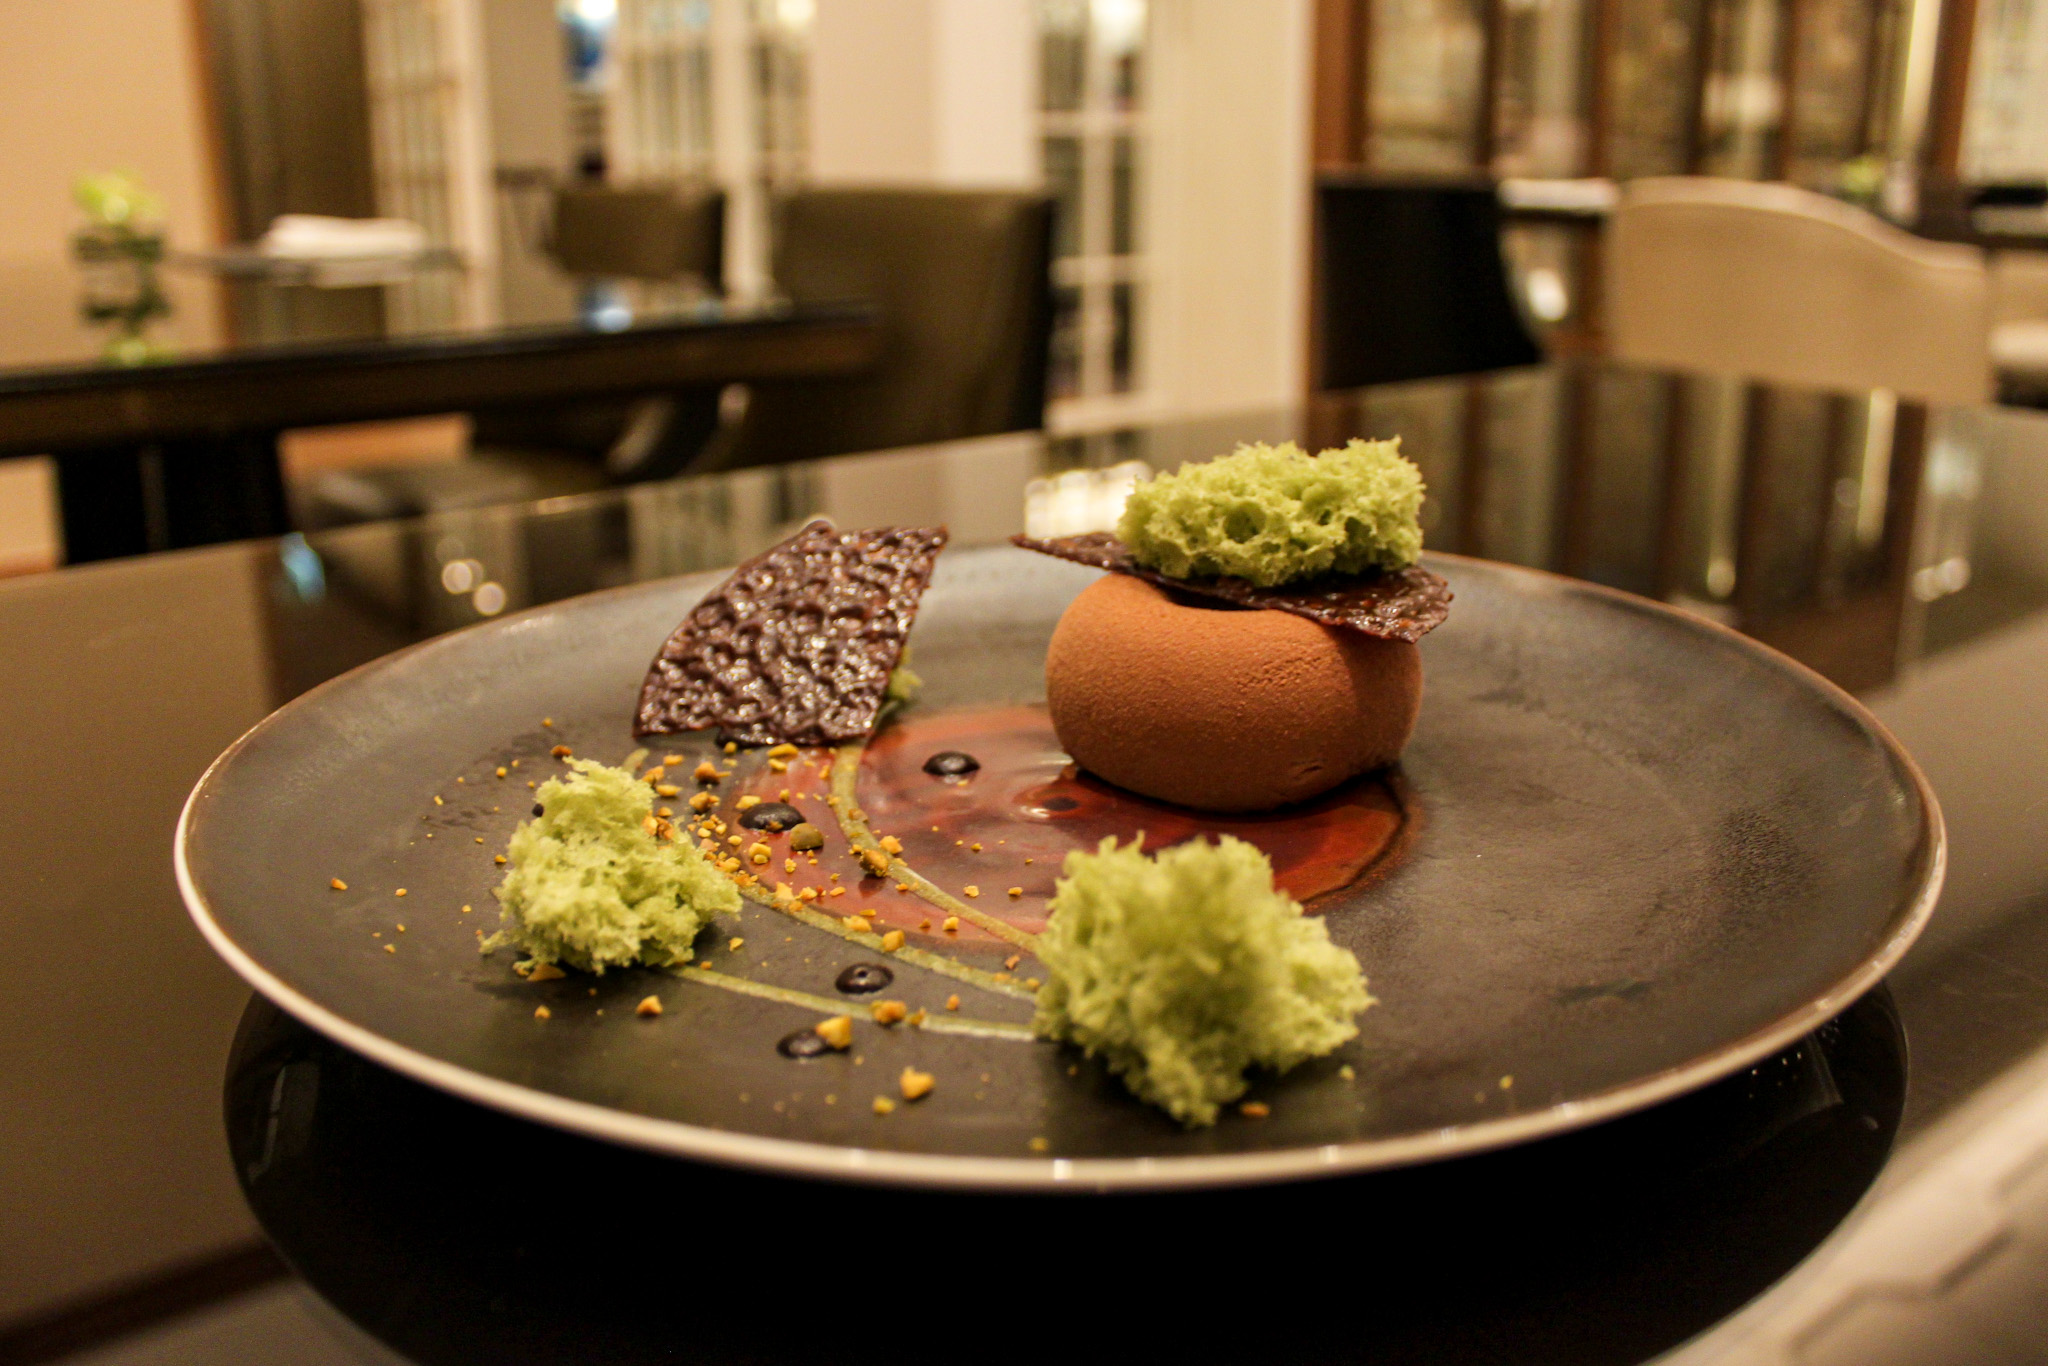 domori madagascar chocolate and pistachio cake let's have lunch in spring the manor st regis macao